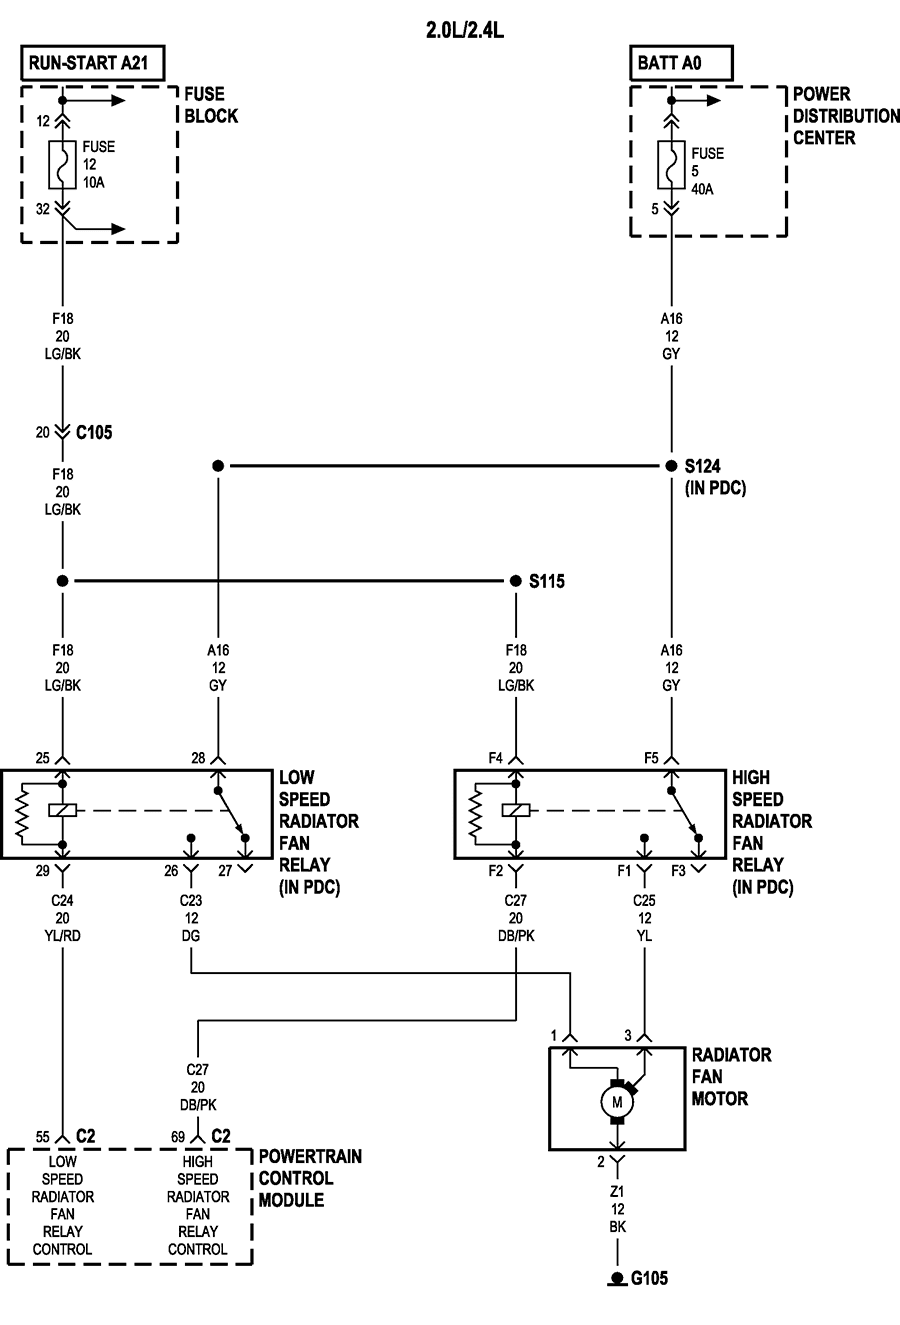 DIAGRAM] 2005 Pt Cruiser Cooling Fan Wiring Diagram Free Download FULL  Version HD Quality Free Download - WESELLYOURCAR.K-DANSE.FRK-danse.fr